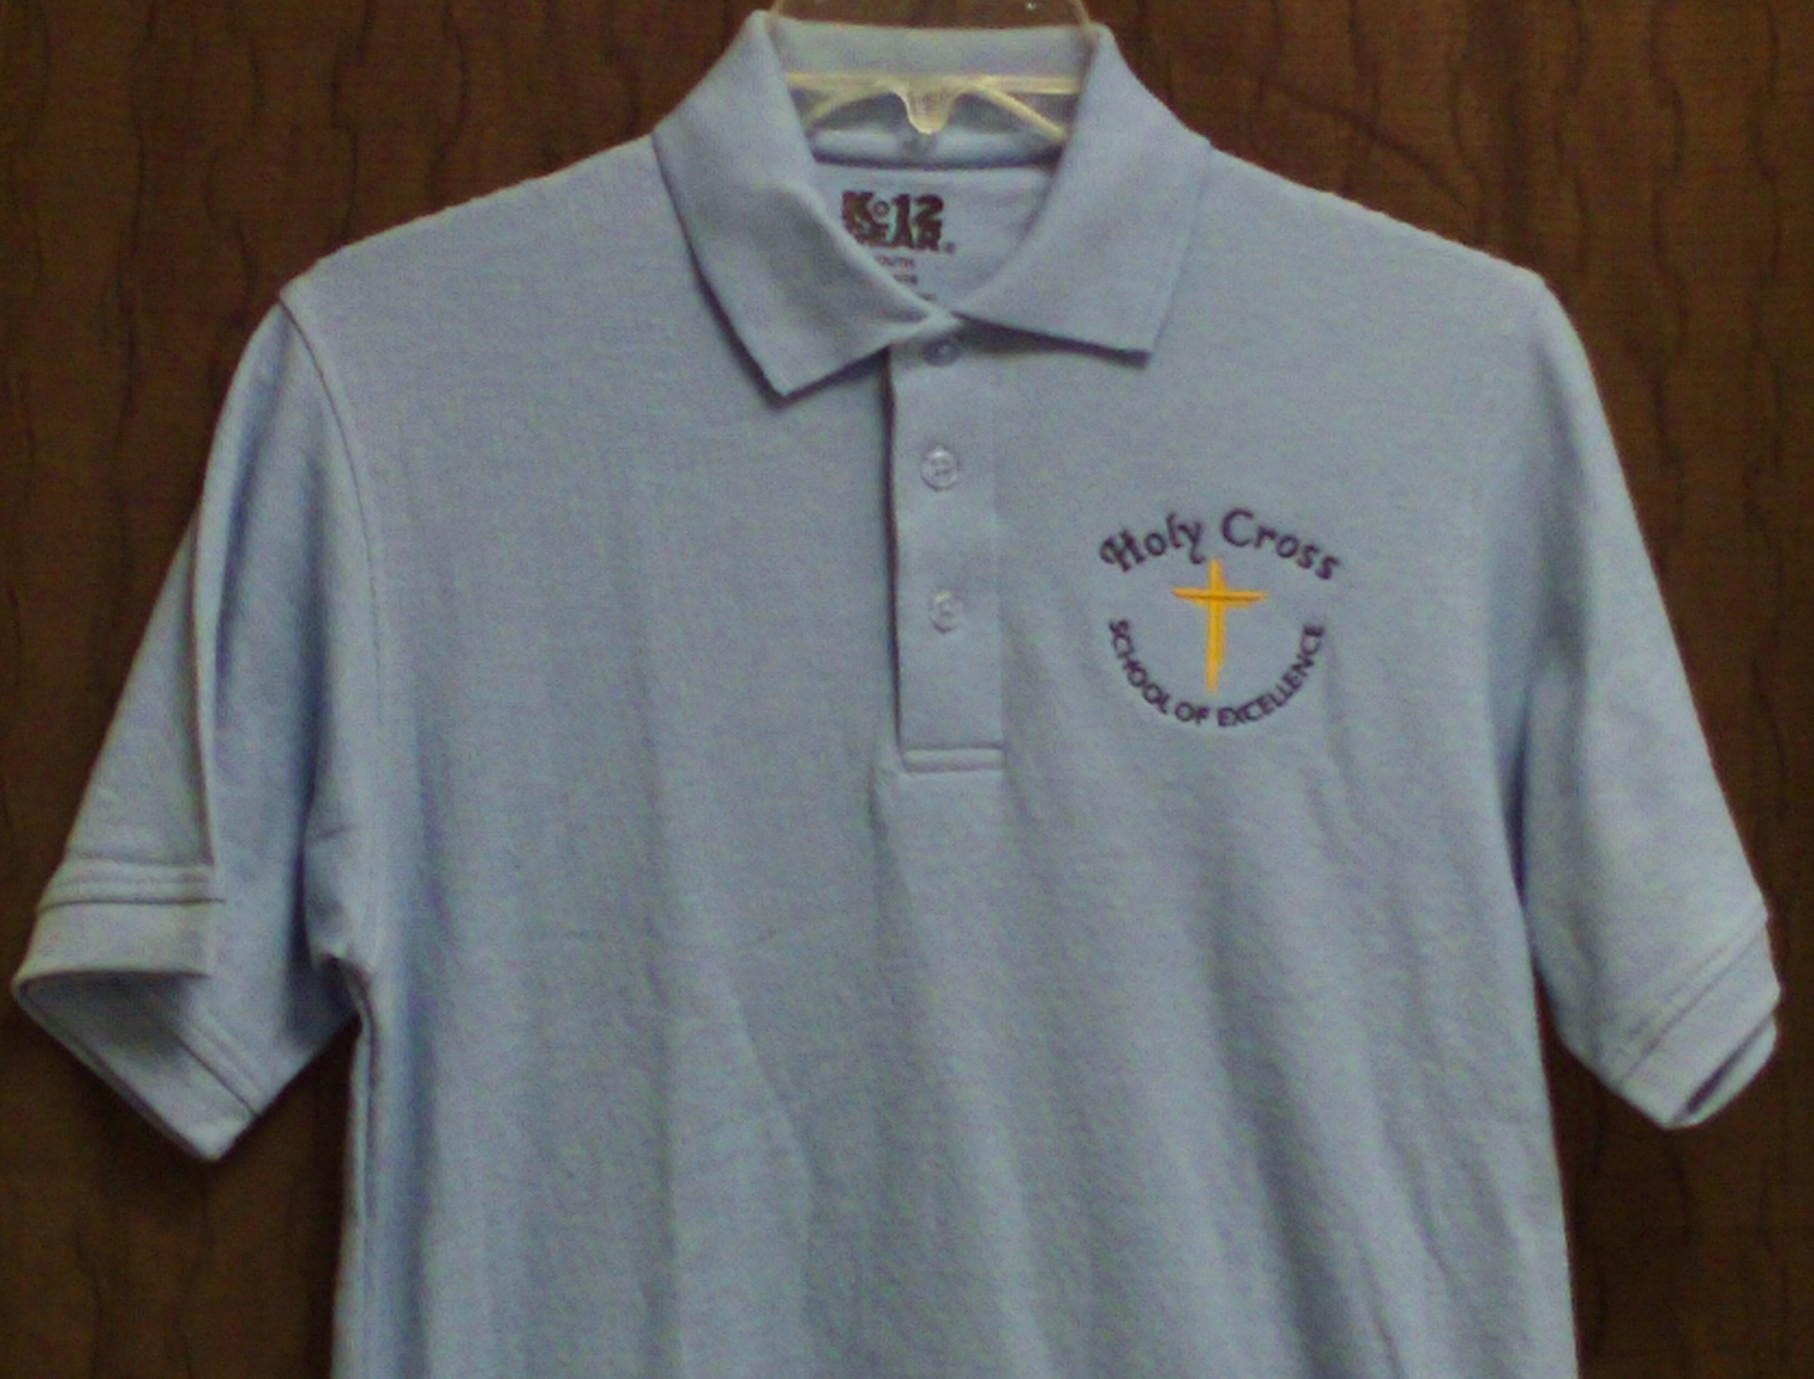 Holy Cross Polo Blue